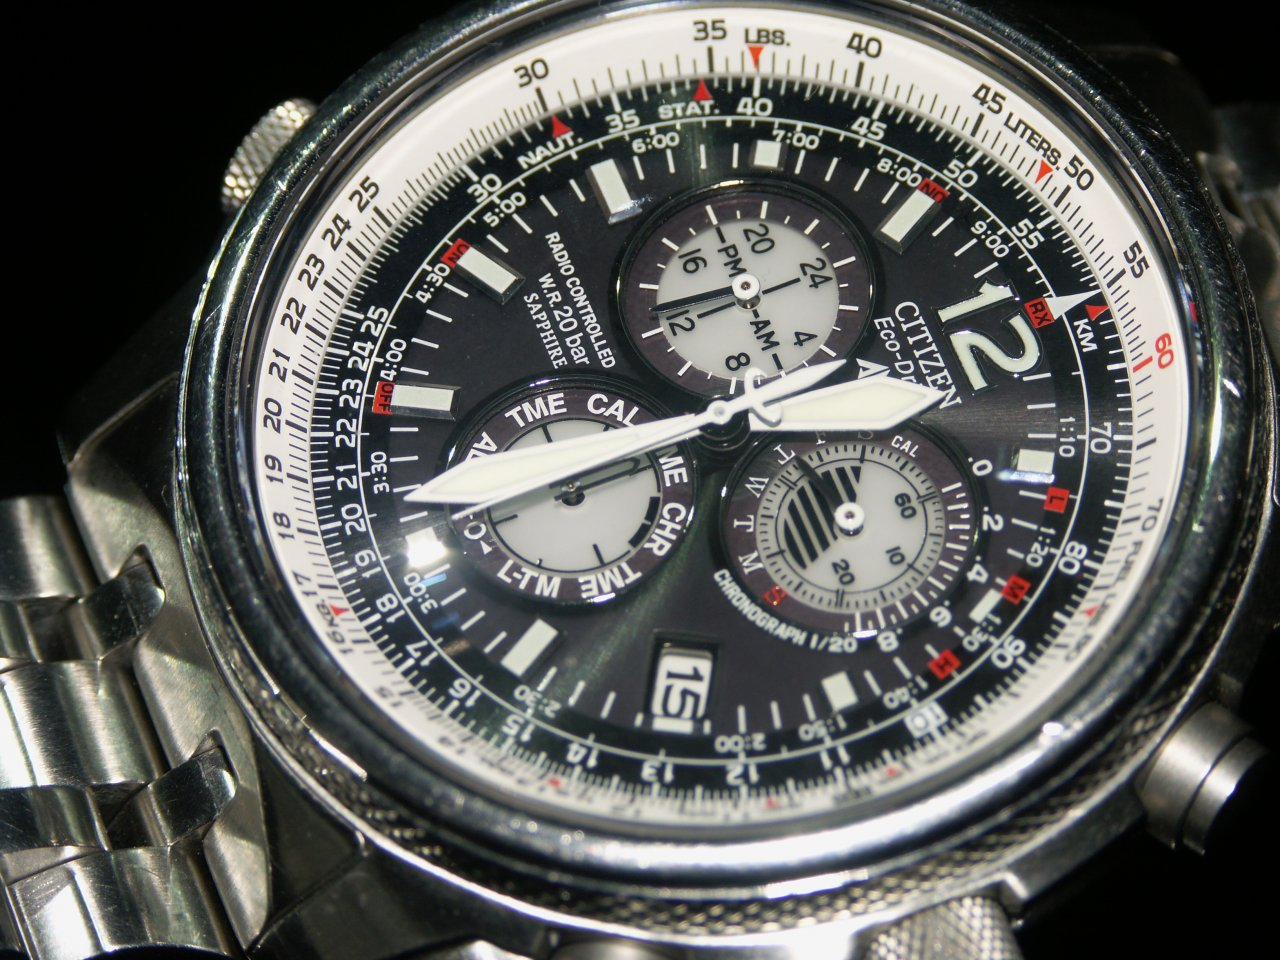 Reset my tcm radio controlled watch : Great india place